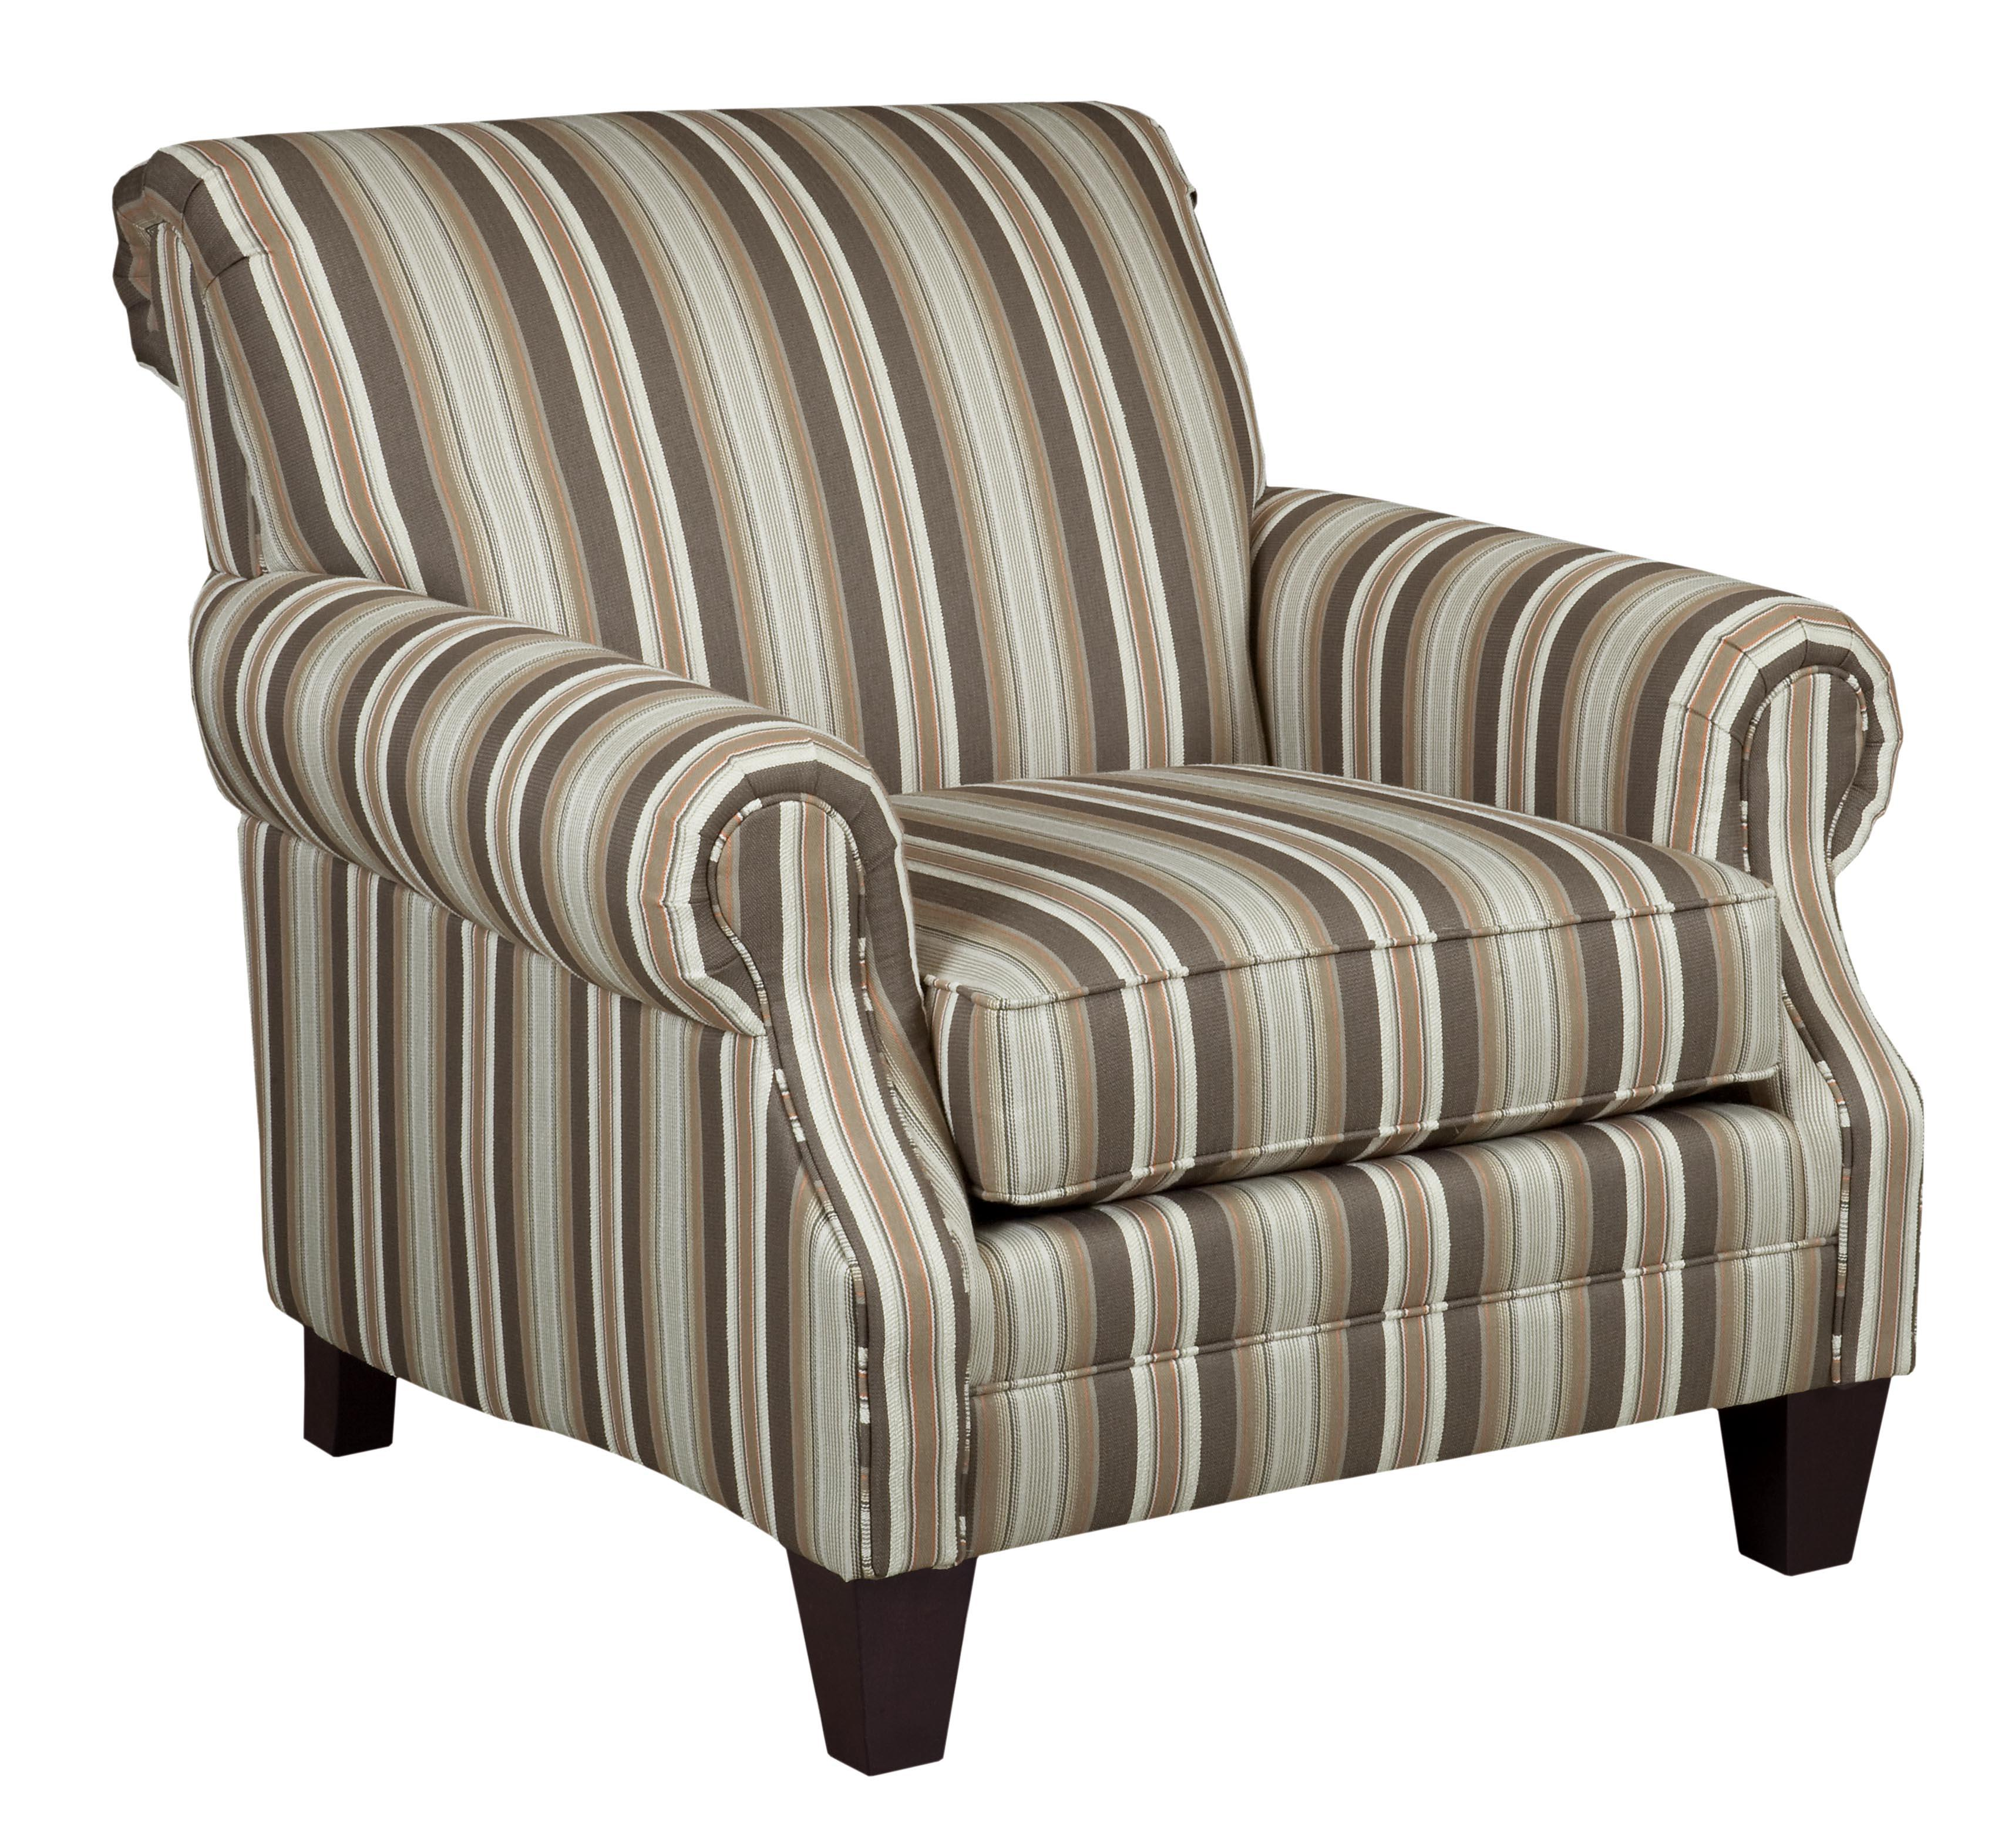 Destin Upholstered Chair by Kincaid Furniture at Johnny Janosik